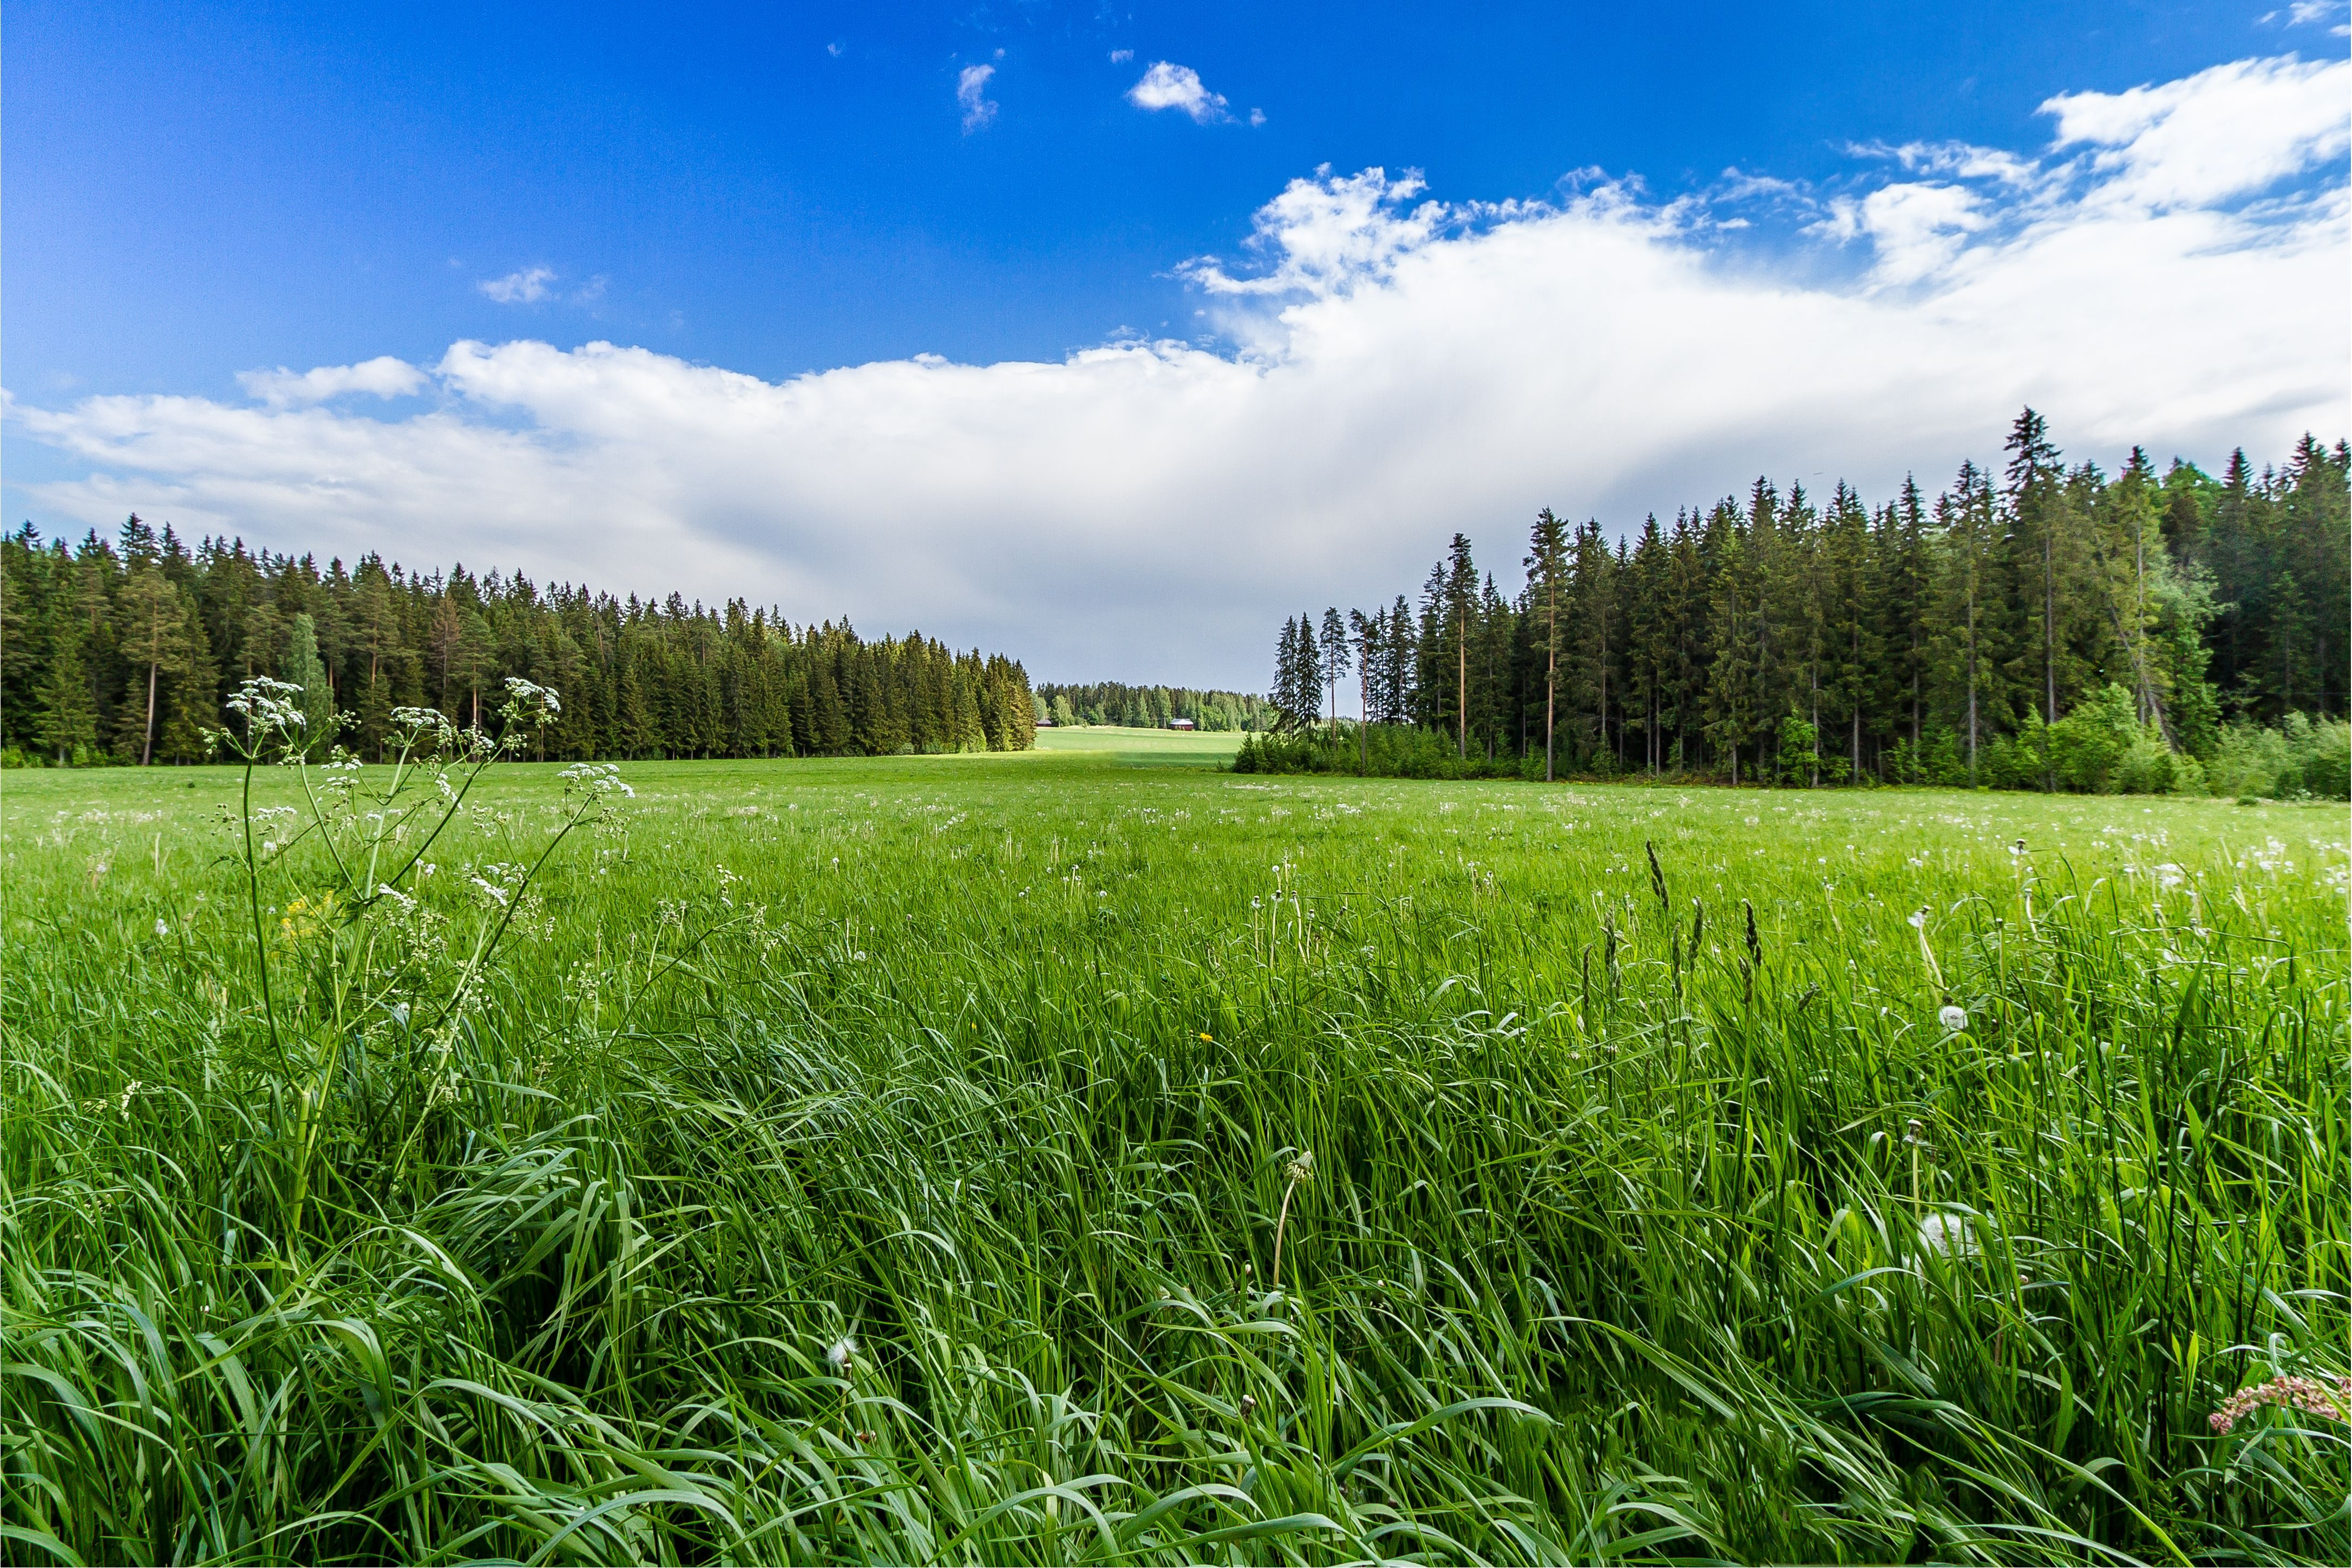 Field And Sky Background Field Grass Forest Trees Sky